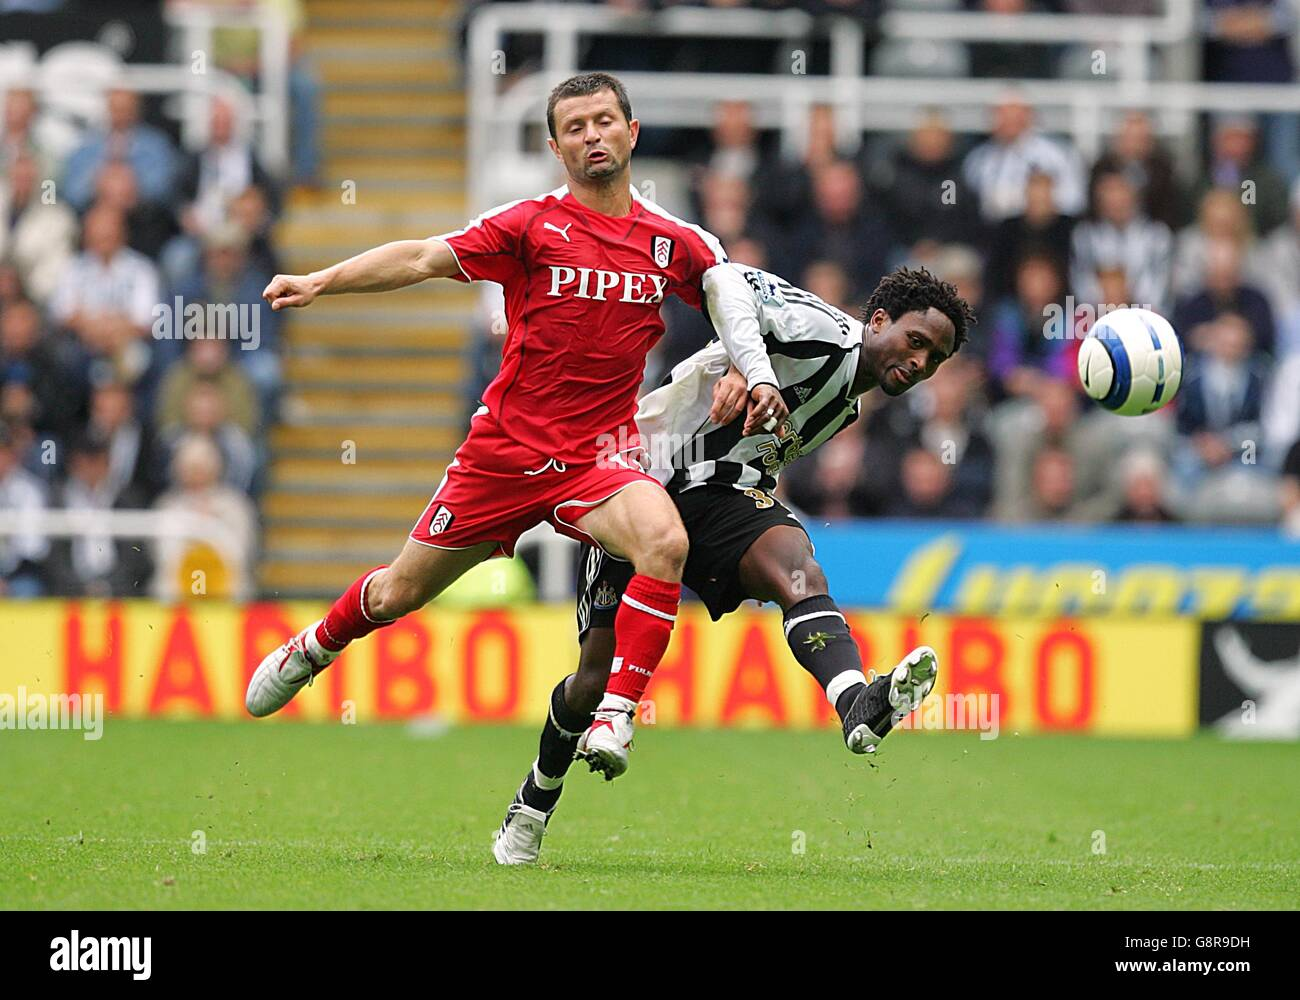 Soccer - FA Barclays Premiership - Newcastle United v Fulham - St James' Park - Stock Image